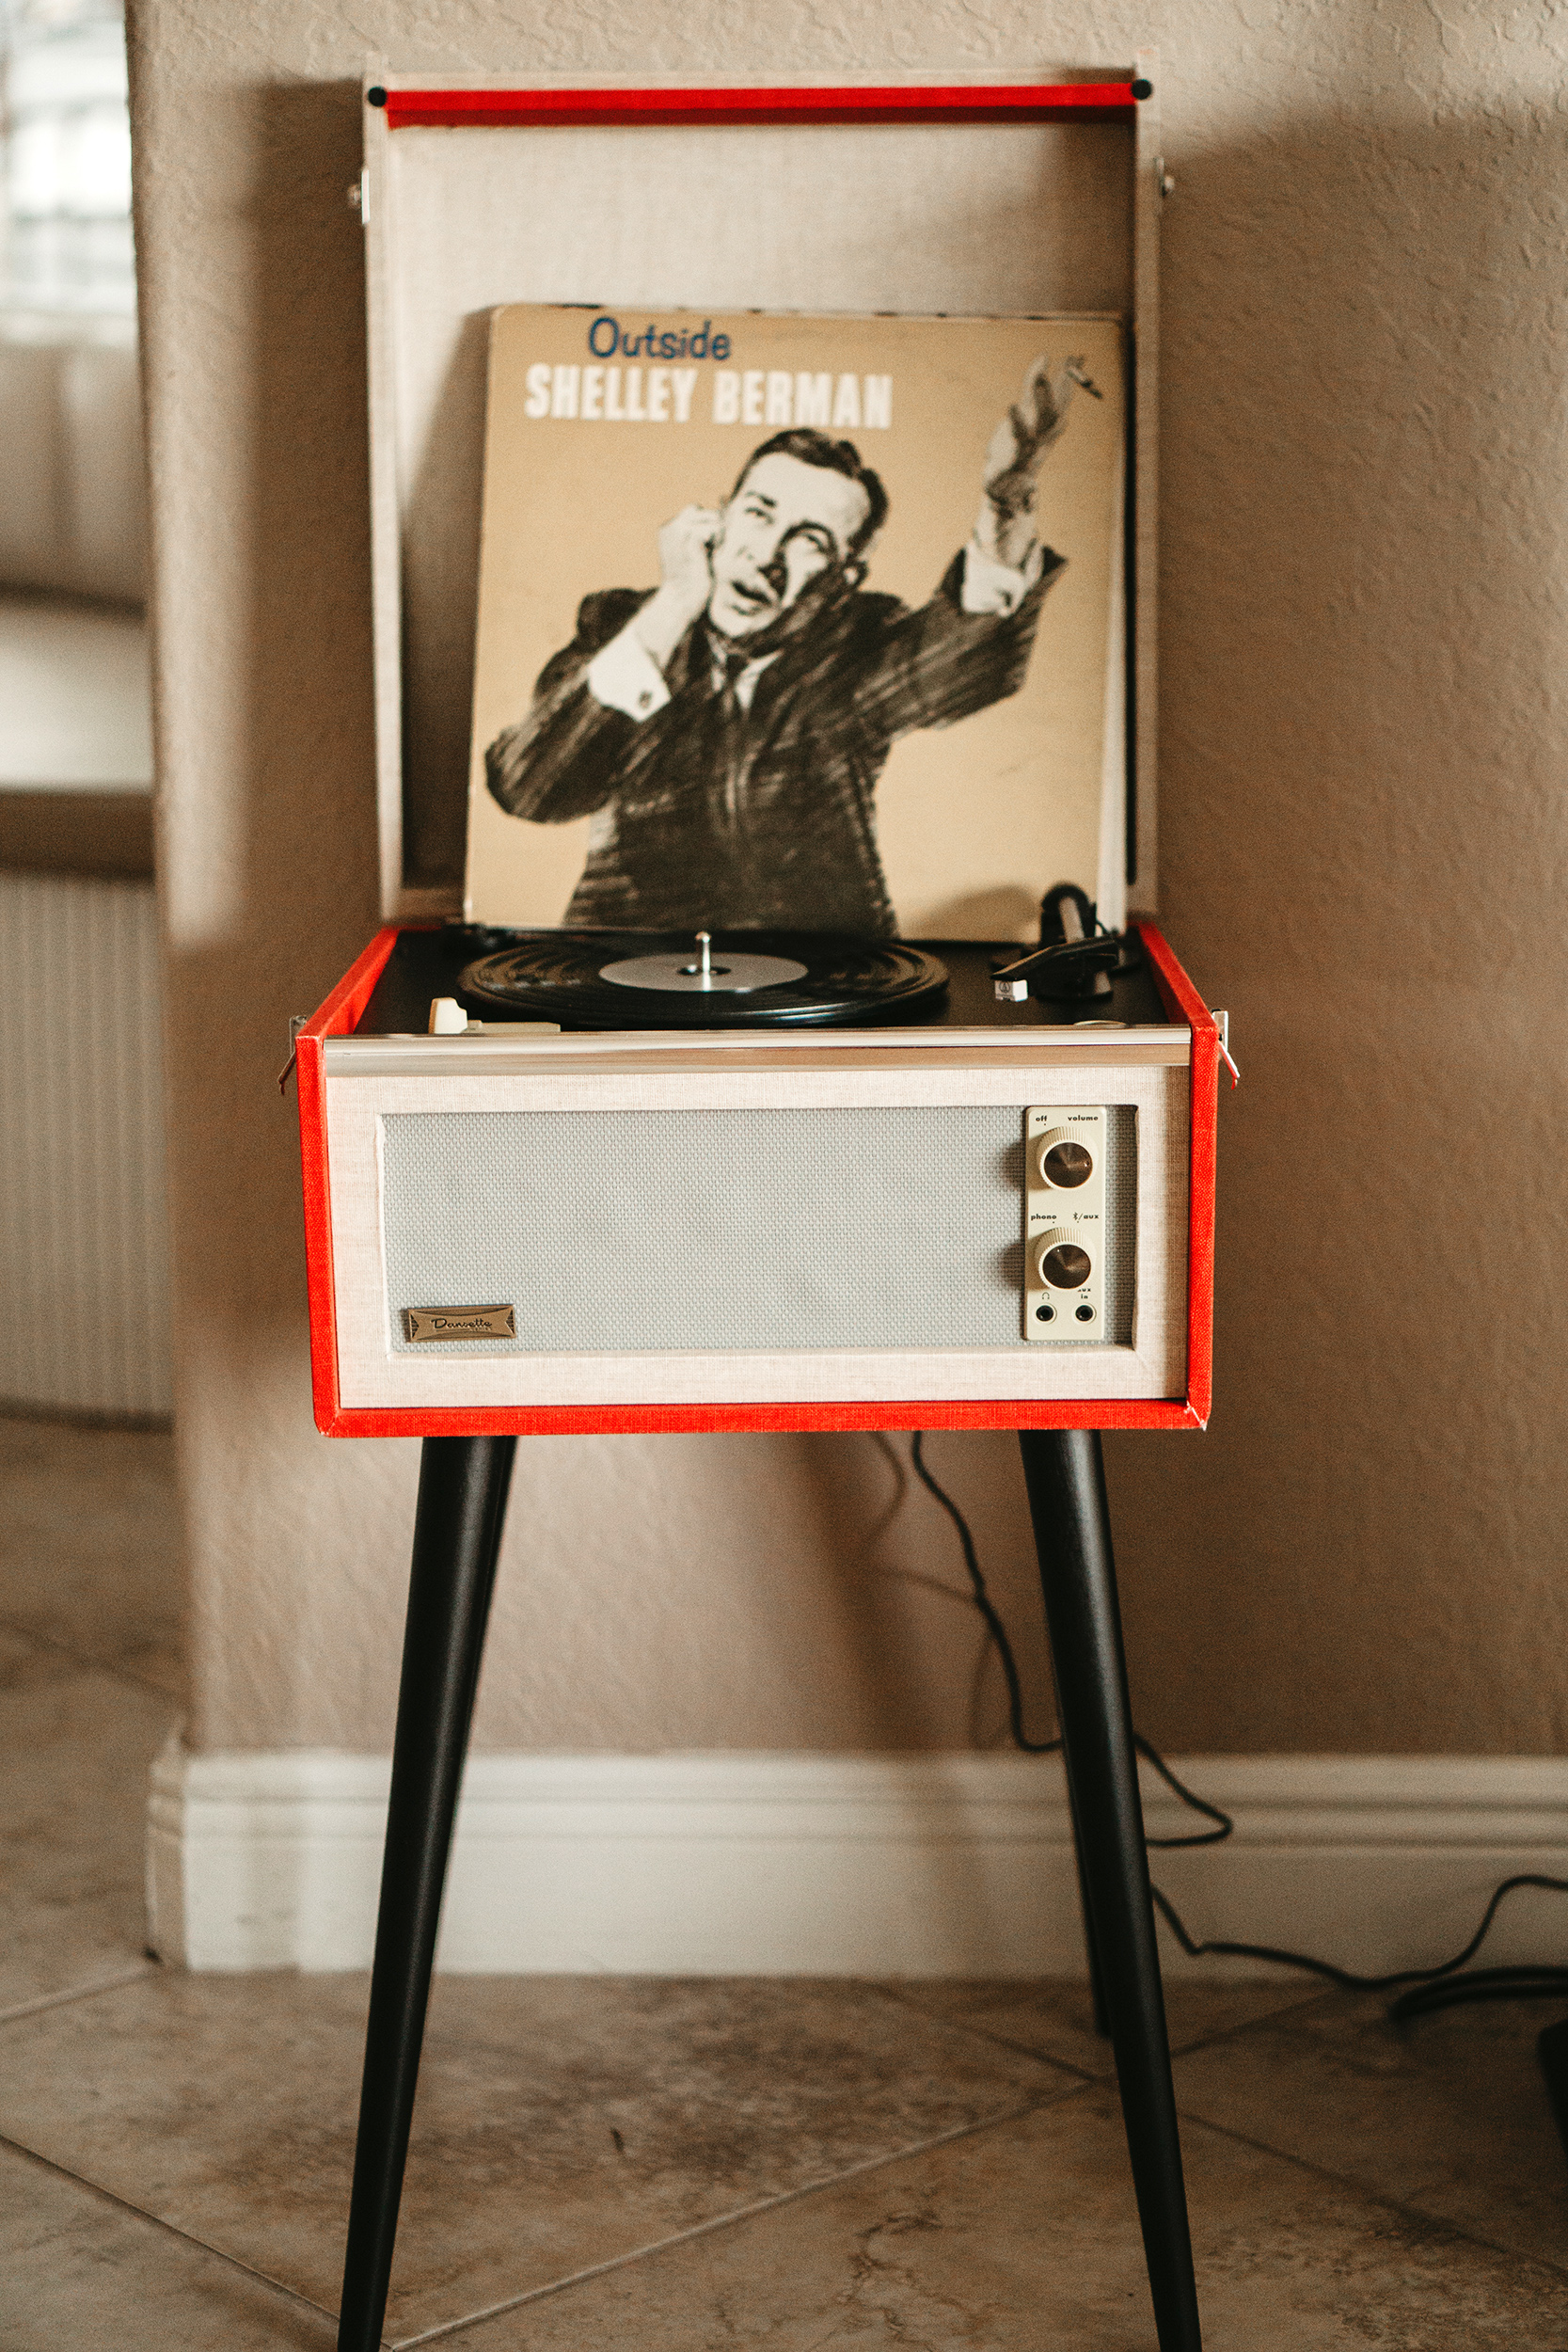 grandfather's 90th birthday record player